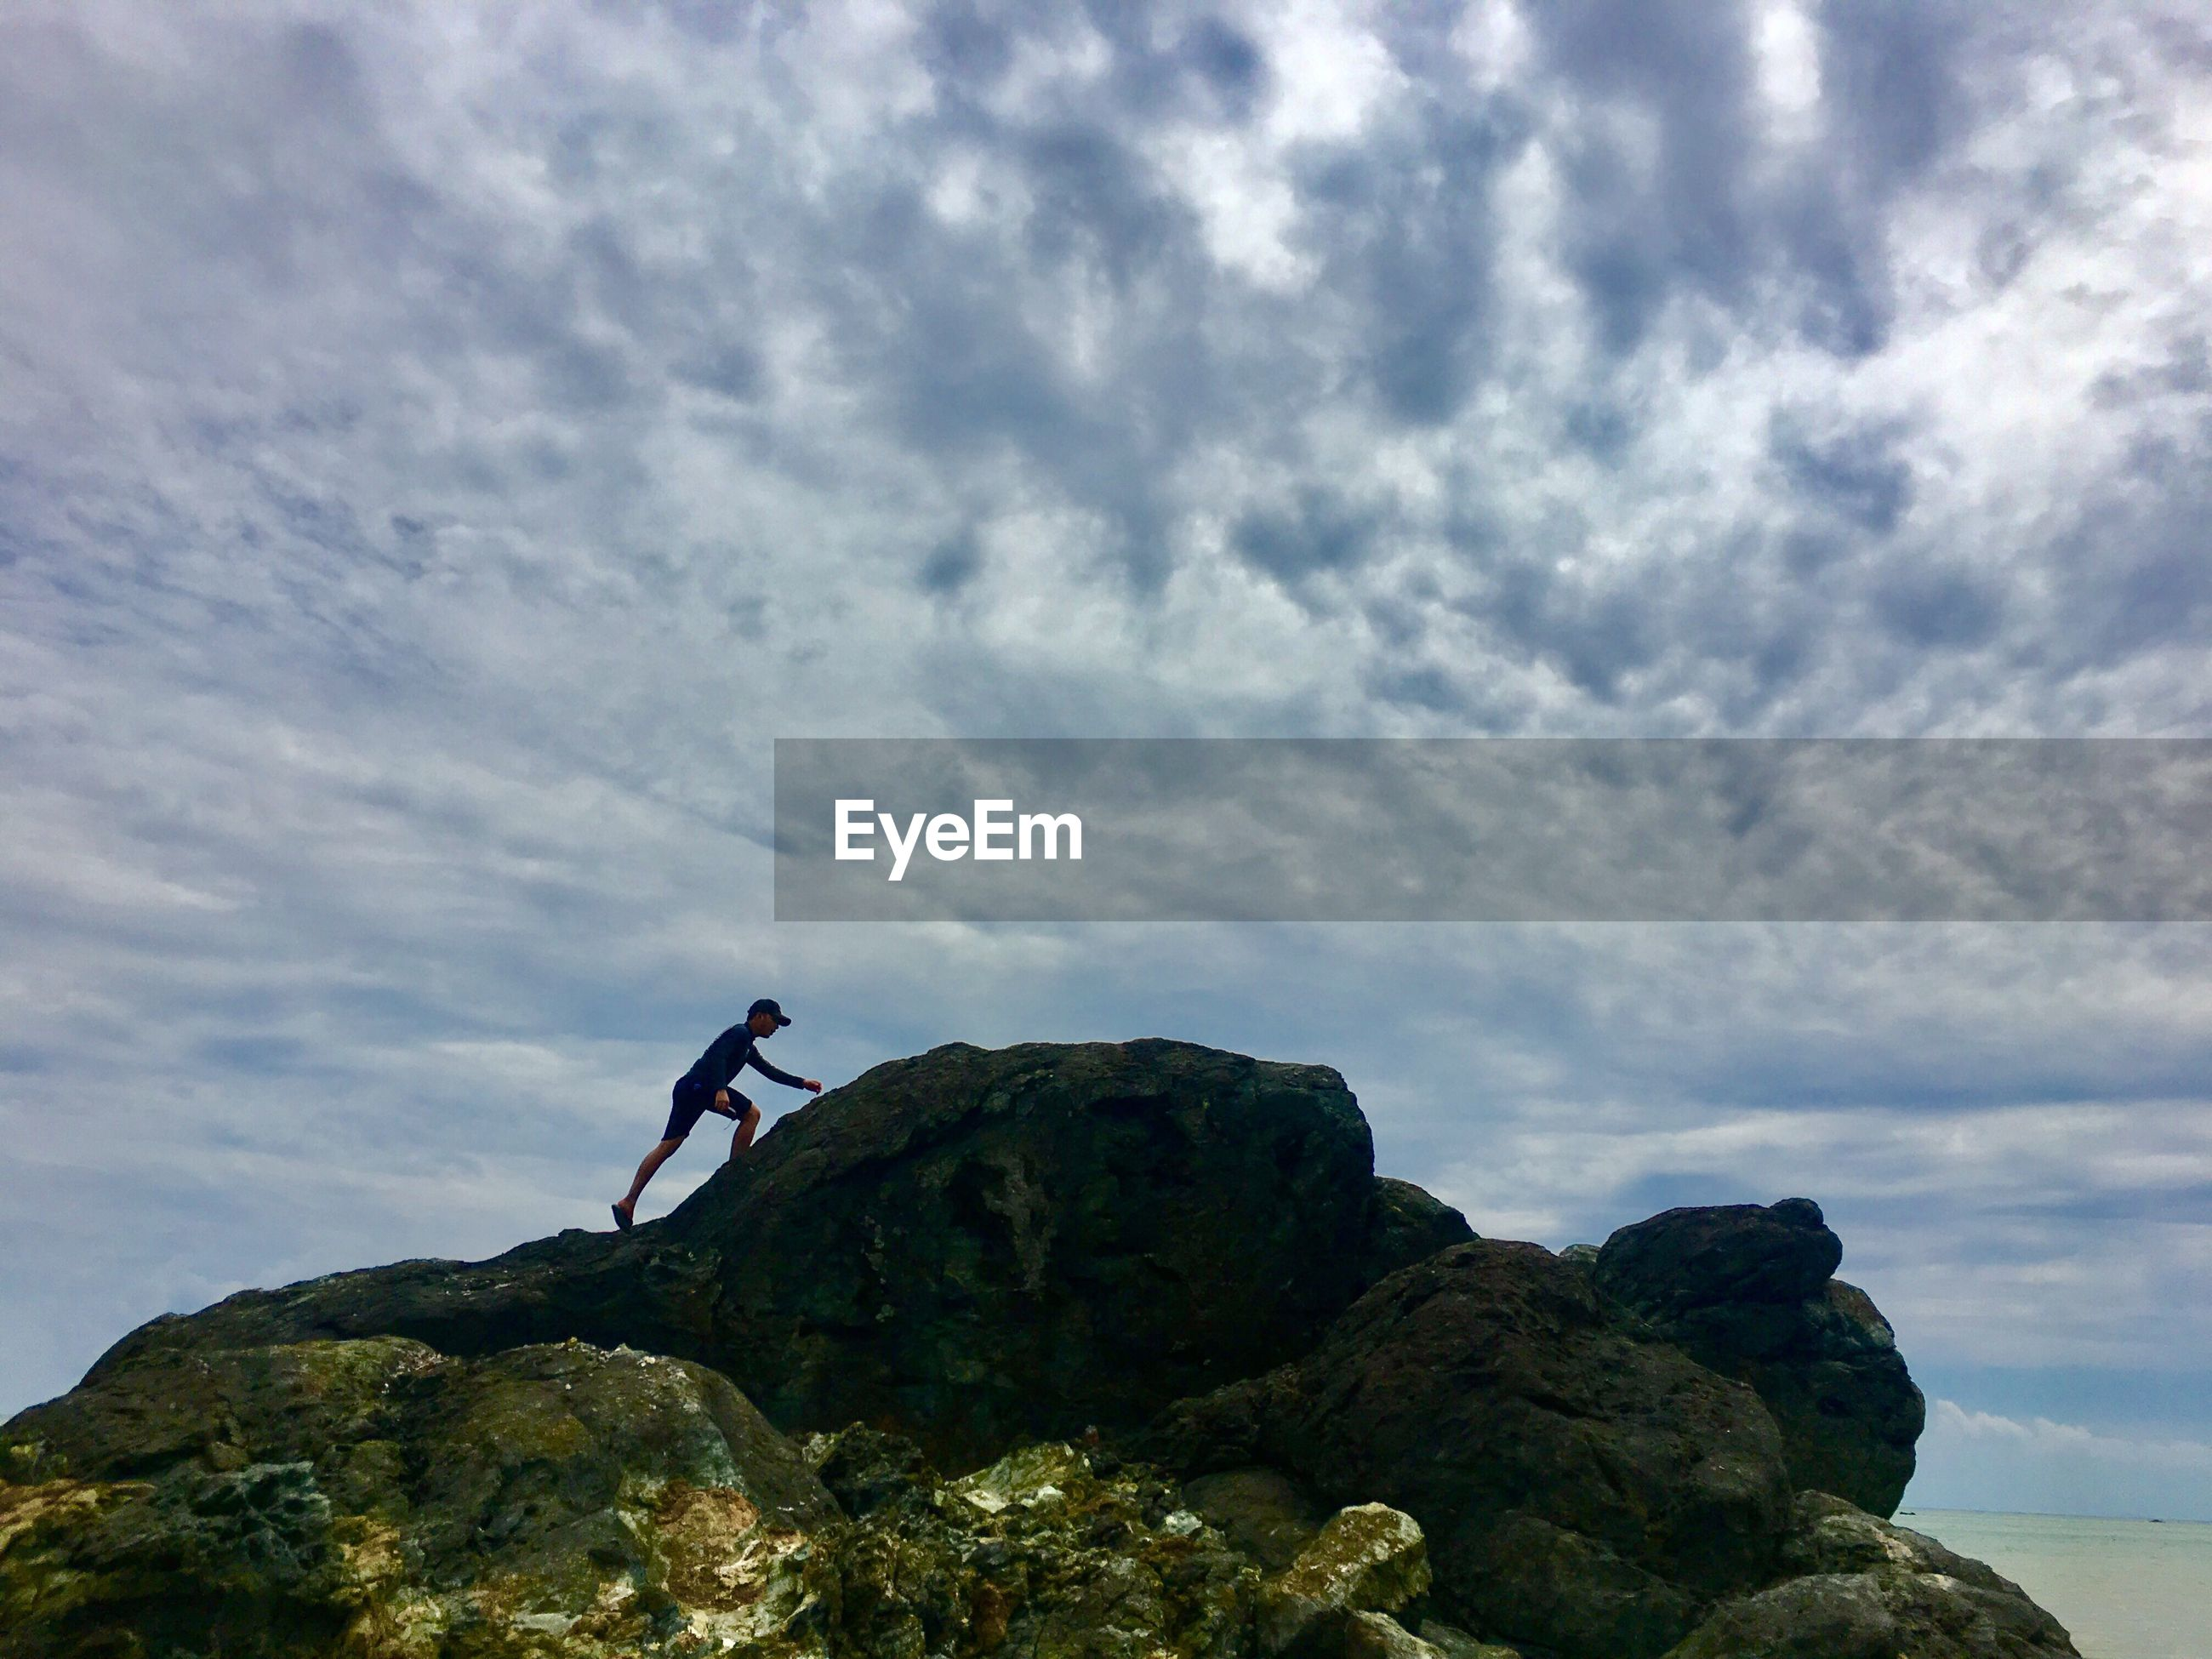 Low angle view of man climbing on rock against cloudy sky